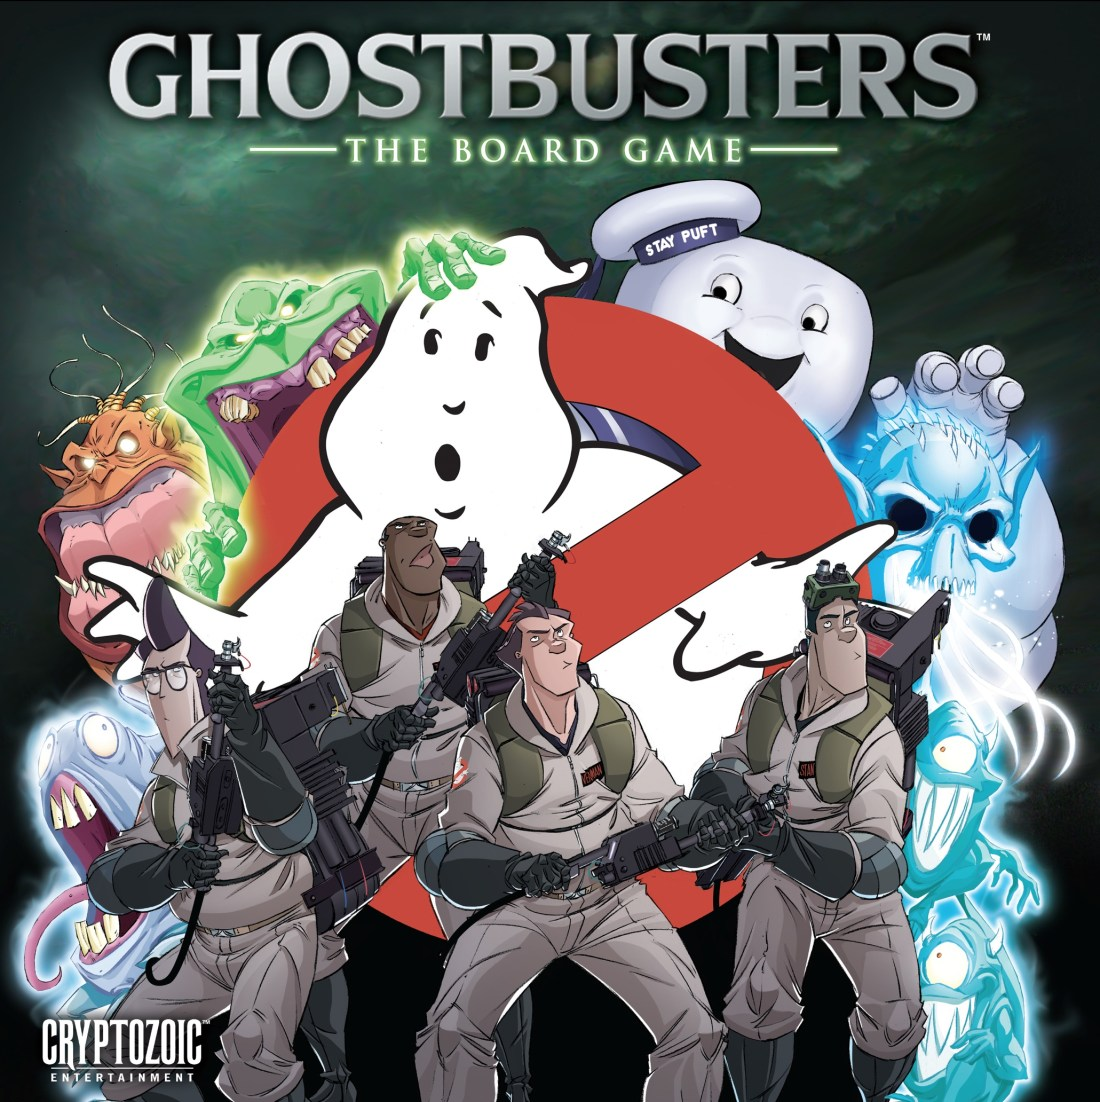 Ghostbusters The Board Game cover